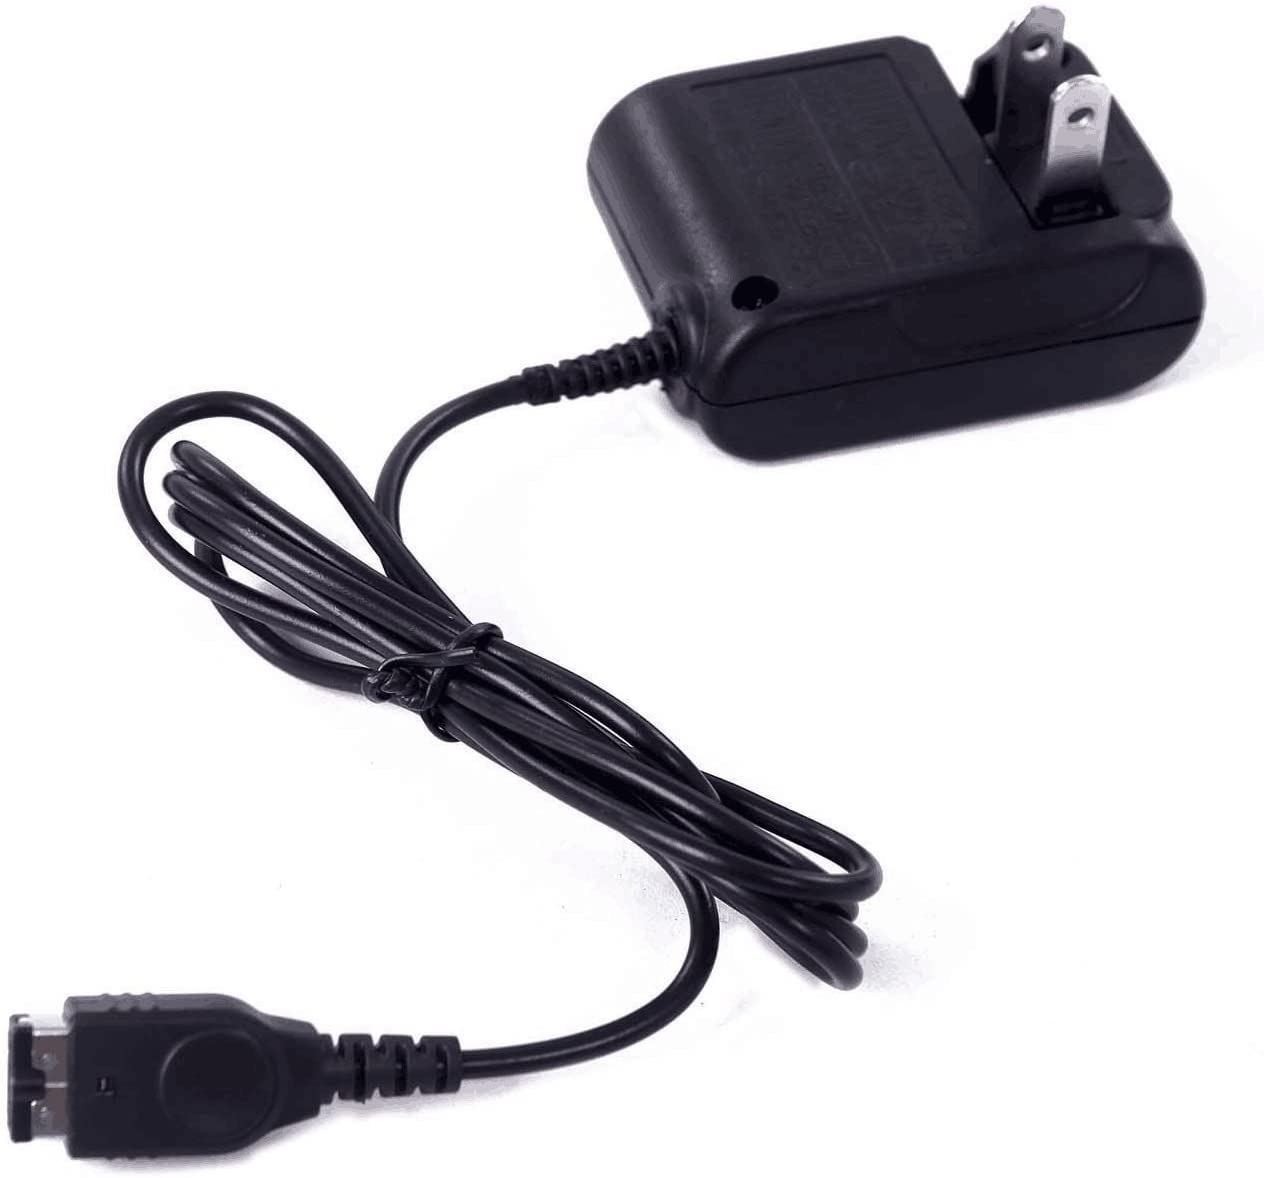 Gameboy Advance SP Charger, AC Adapter for Nintendo NDS and Game Boy Advance SP Power Charger, Wall Travel Charger Power Cord 5.2V 450mA for Nintendo DS Gameboy Advance Charger